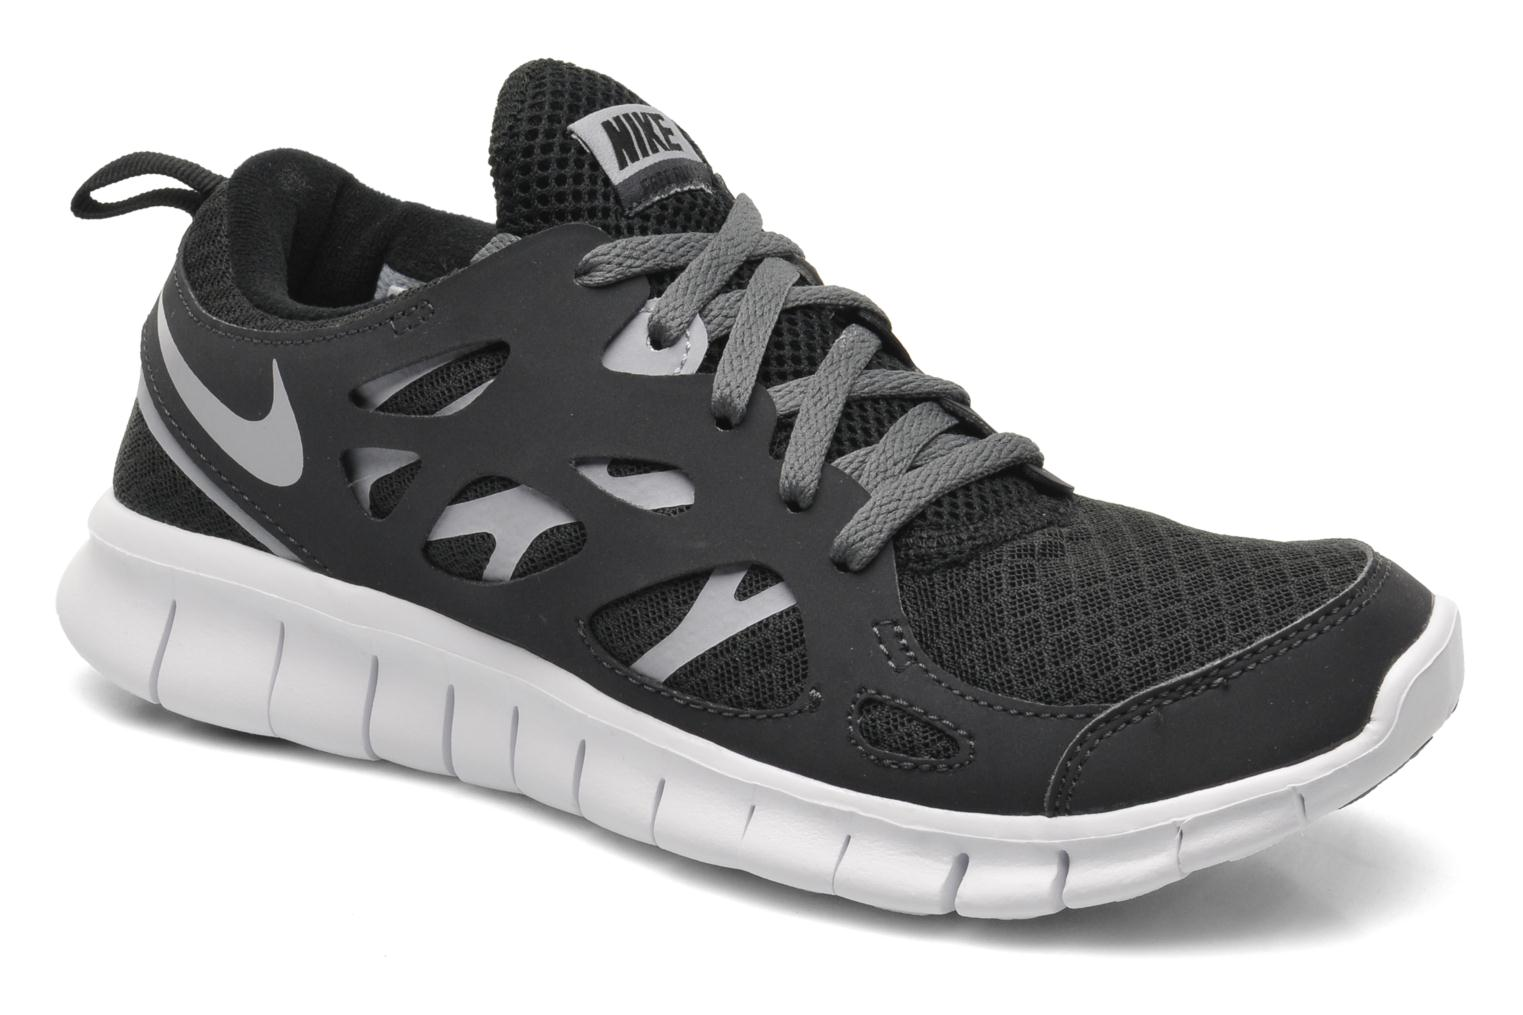 super popular cdc47 89608 Trainers Nike NIKE FREE RUN 2 (GS) Black detailed view Pair view ...